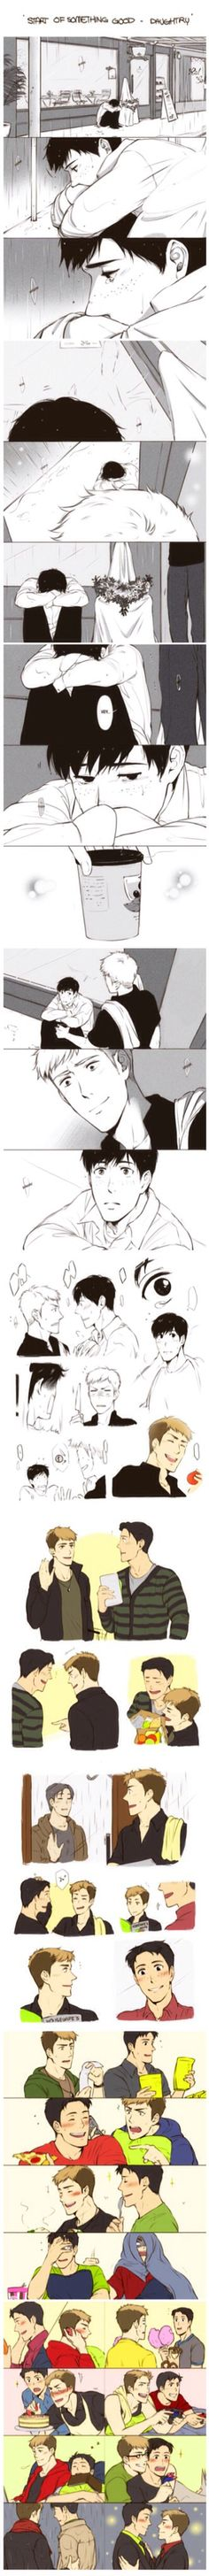 """Attack on Titan ~~ """"The Start of Something Good"""" :: Jean x Marco ( 1 of 2 )"""